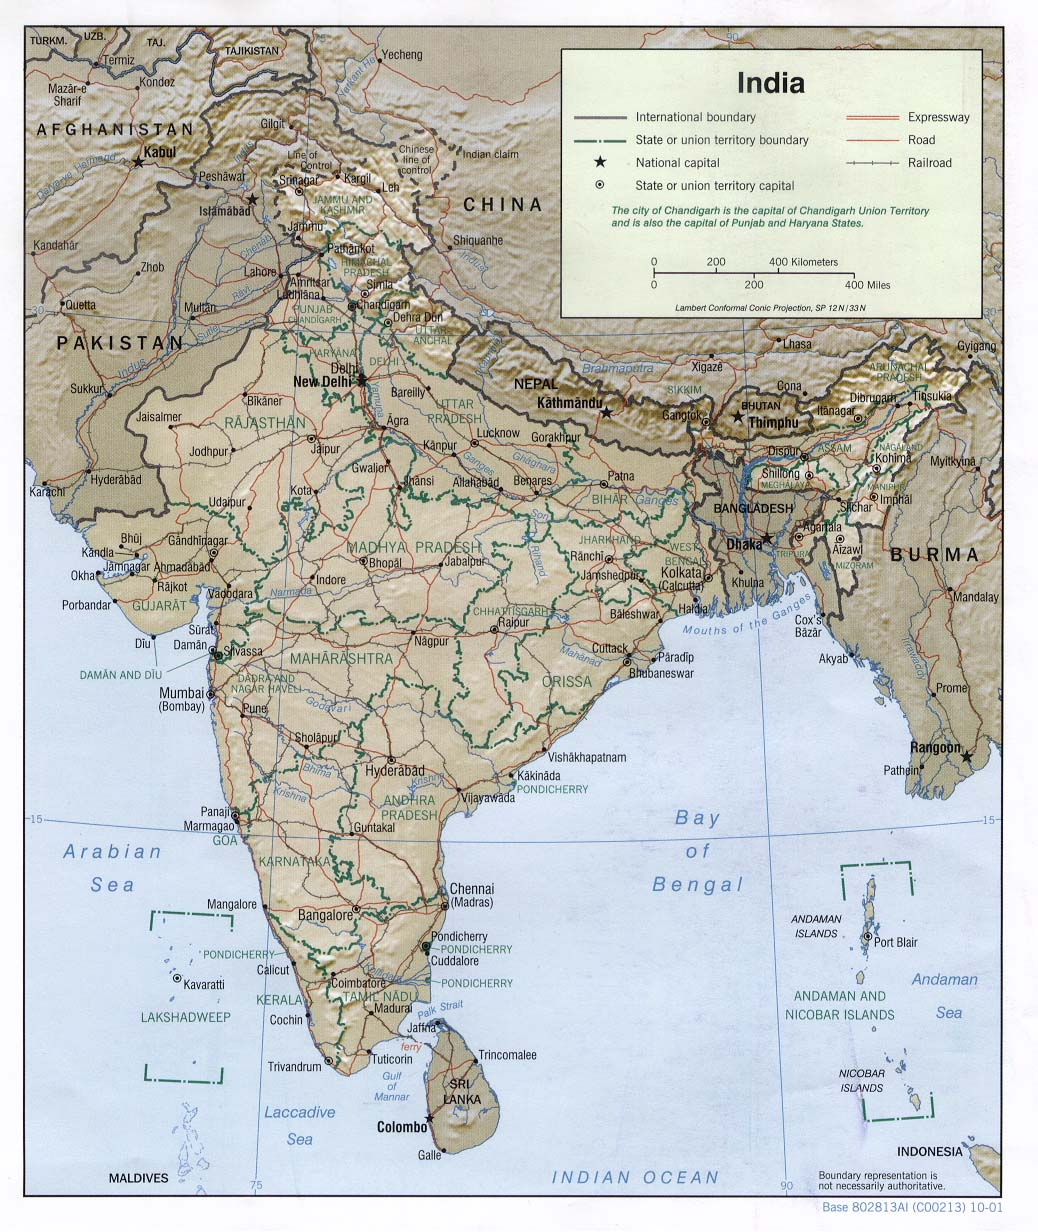 INDIA ROAD MAP WITH STATES EPUB DOWNLOAD